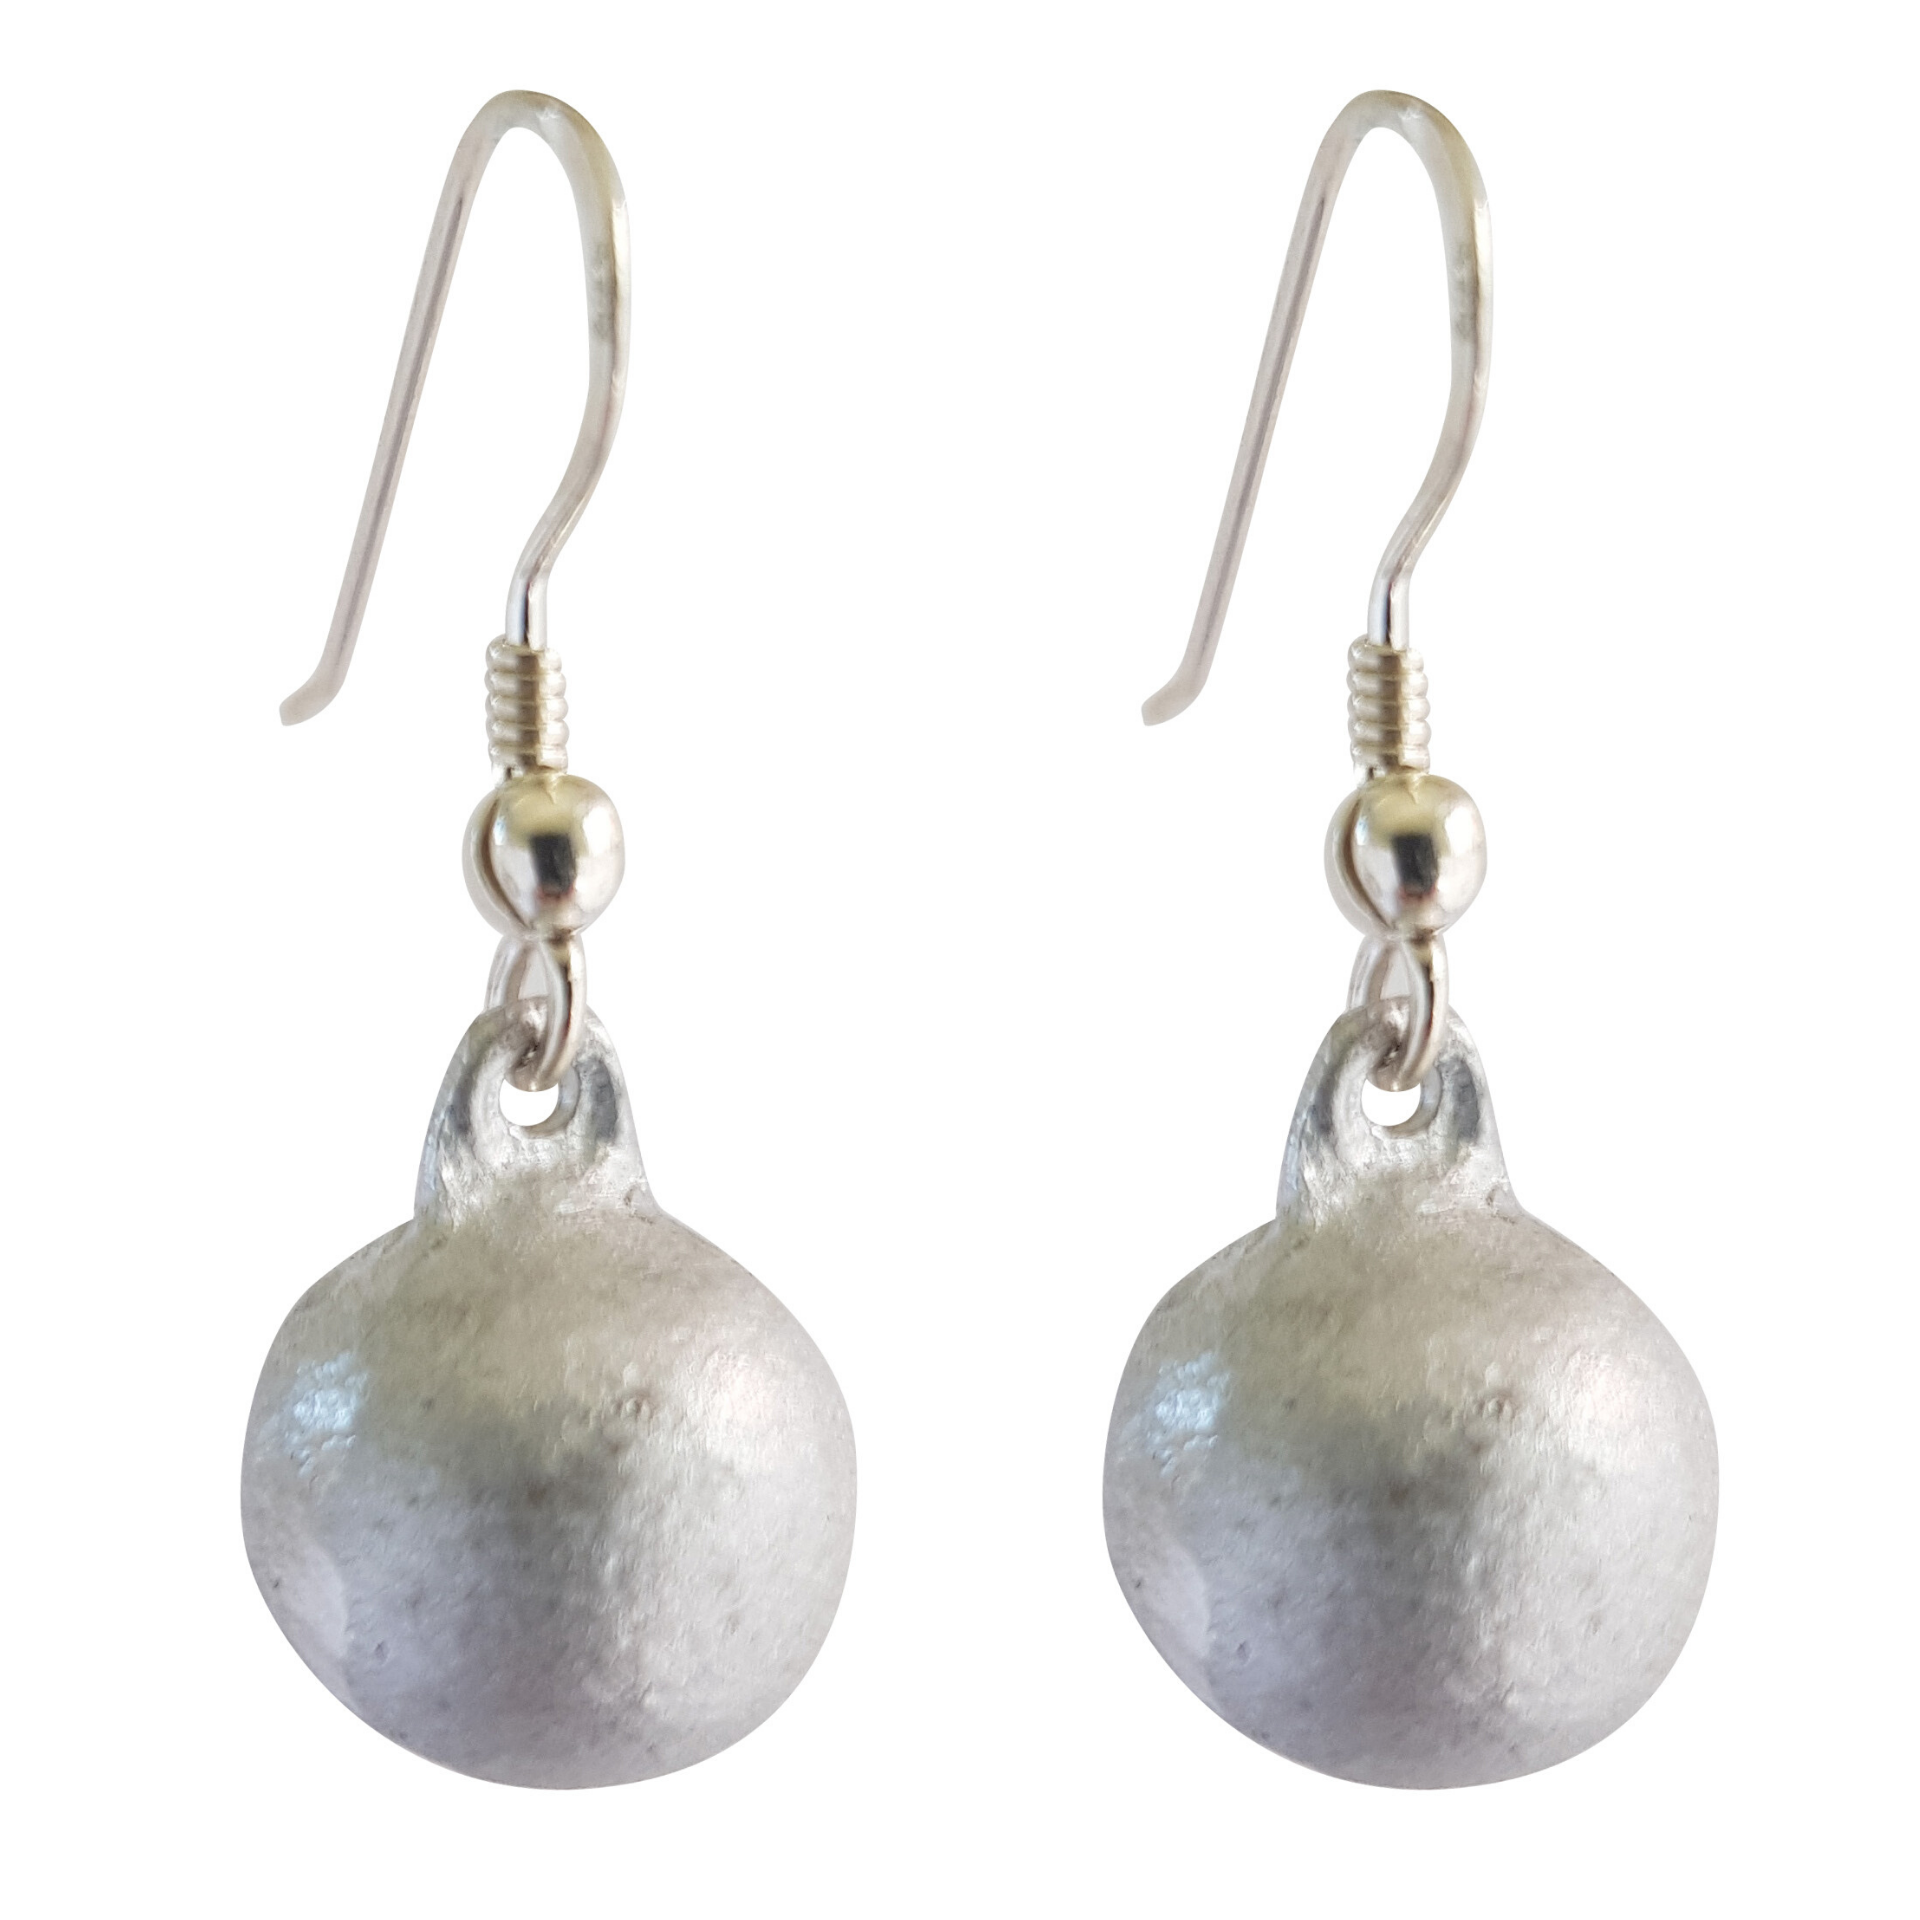 LOVEbomb Ball Shaped Sterling Silver Hook Earrings